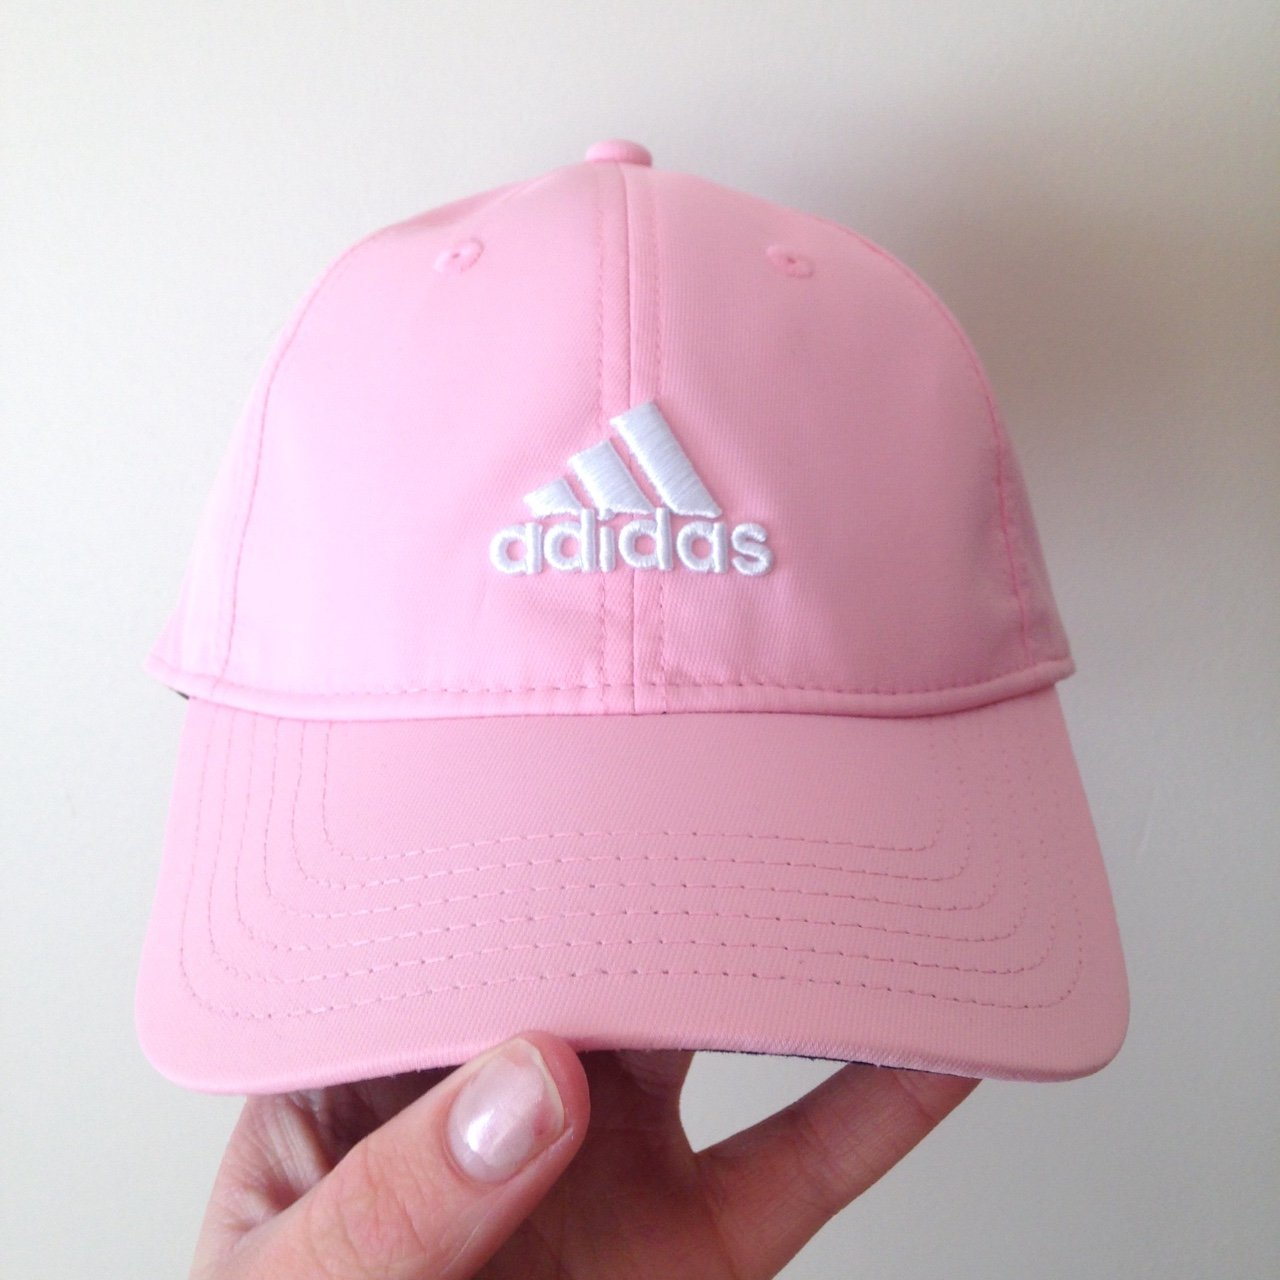 Genuine baby pink adidas cap 🙆🏼 instant buy only. Velcro - - Depop 7d8a030b87b